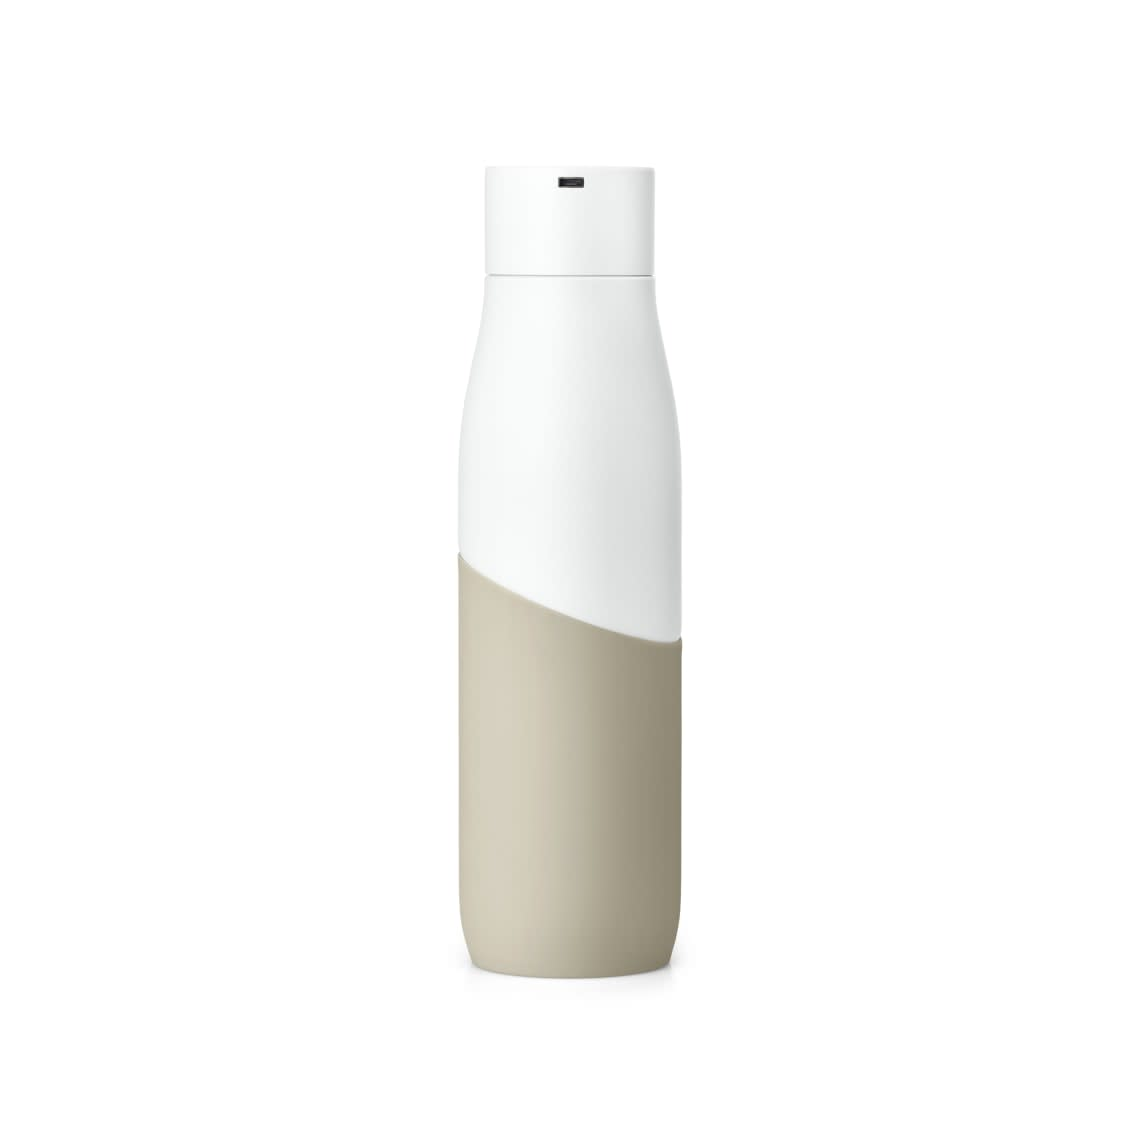 LARQ Bottle Movement PureVis - White / Dune